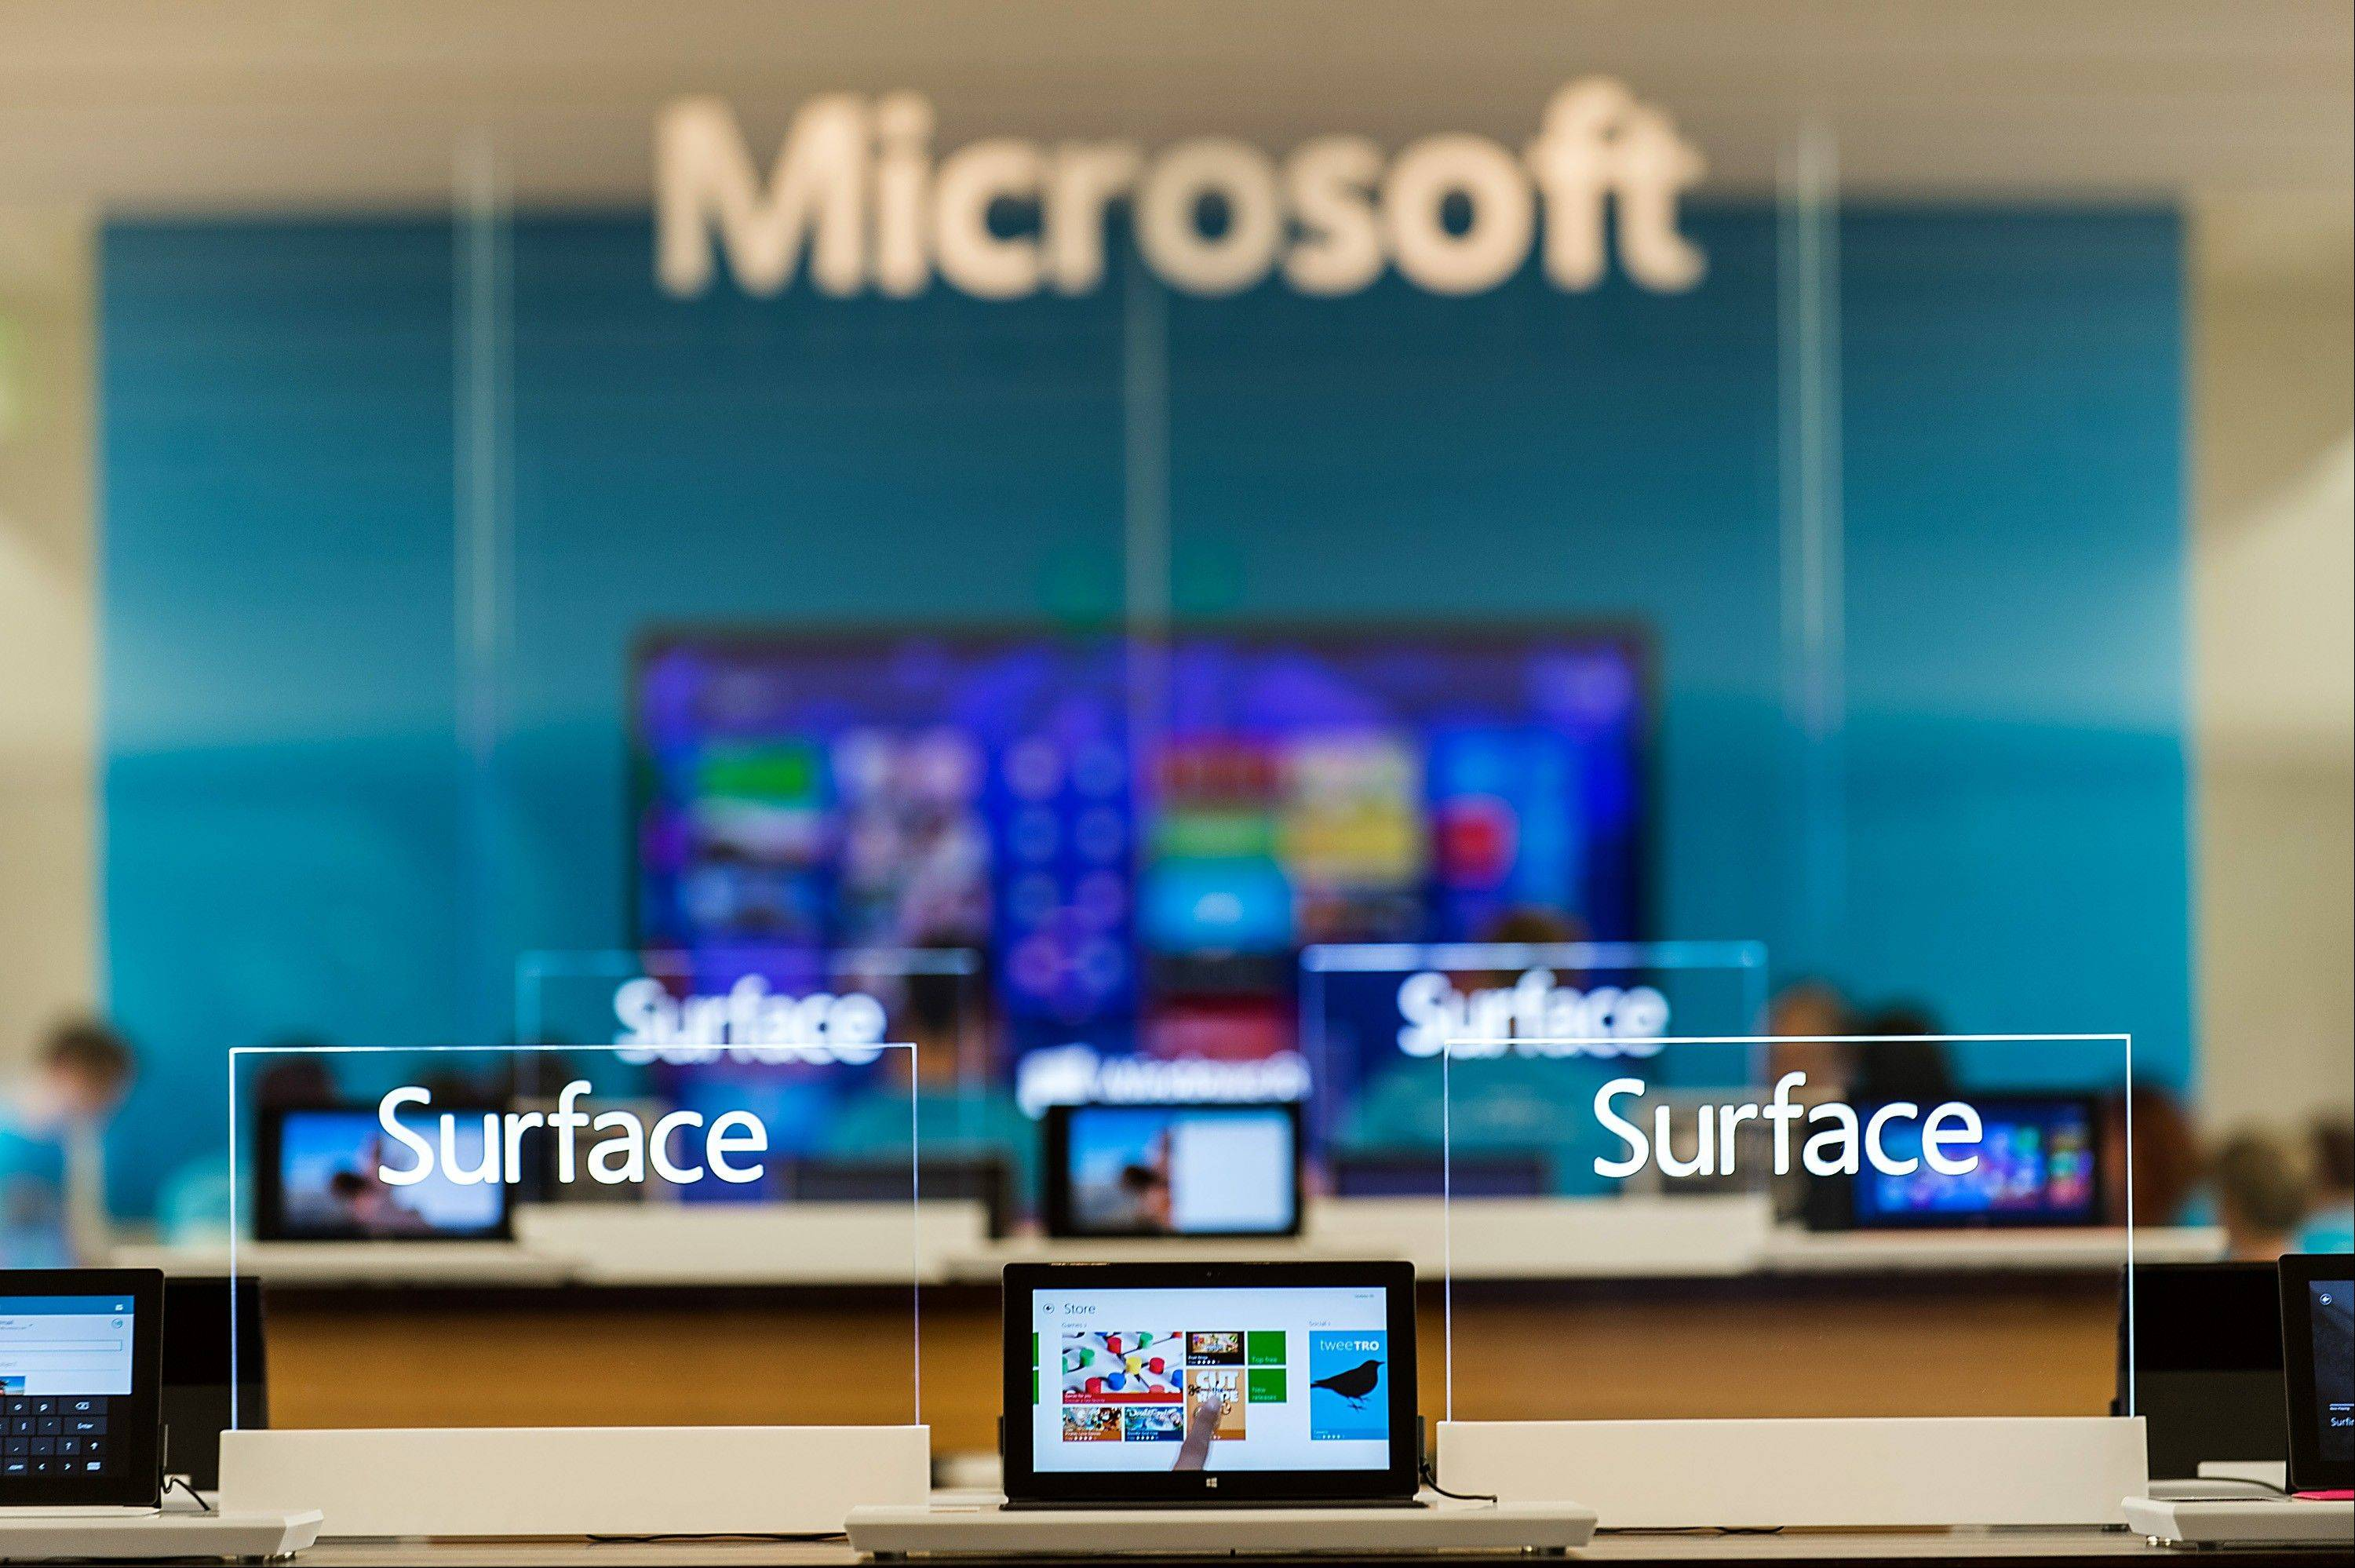 Microsoft Corp.'s policy changes for its Internet products including Hotmail and Bing are being formally examined by European data protection regulators for potential privacy issues.